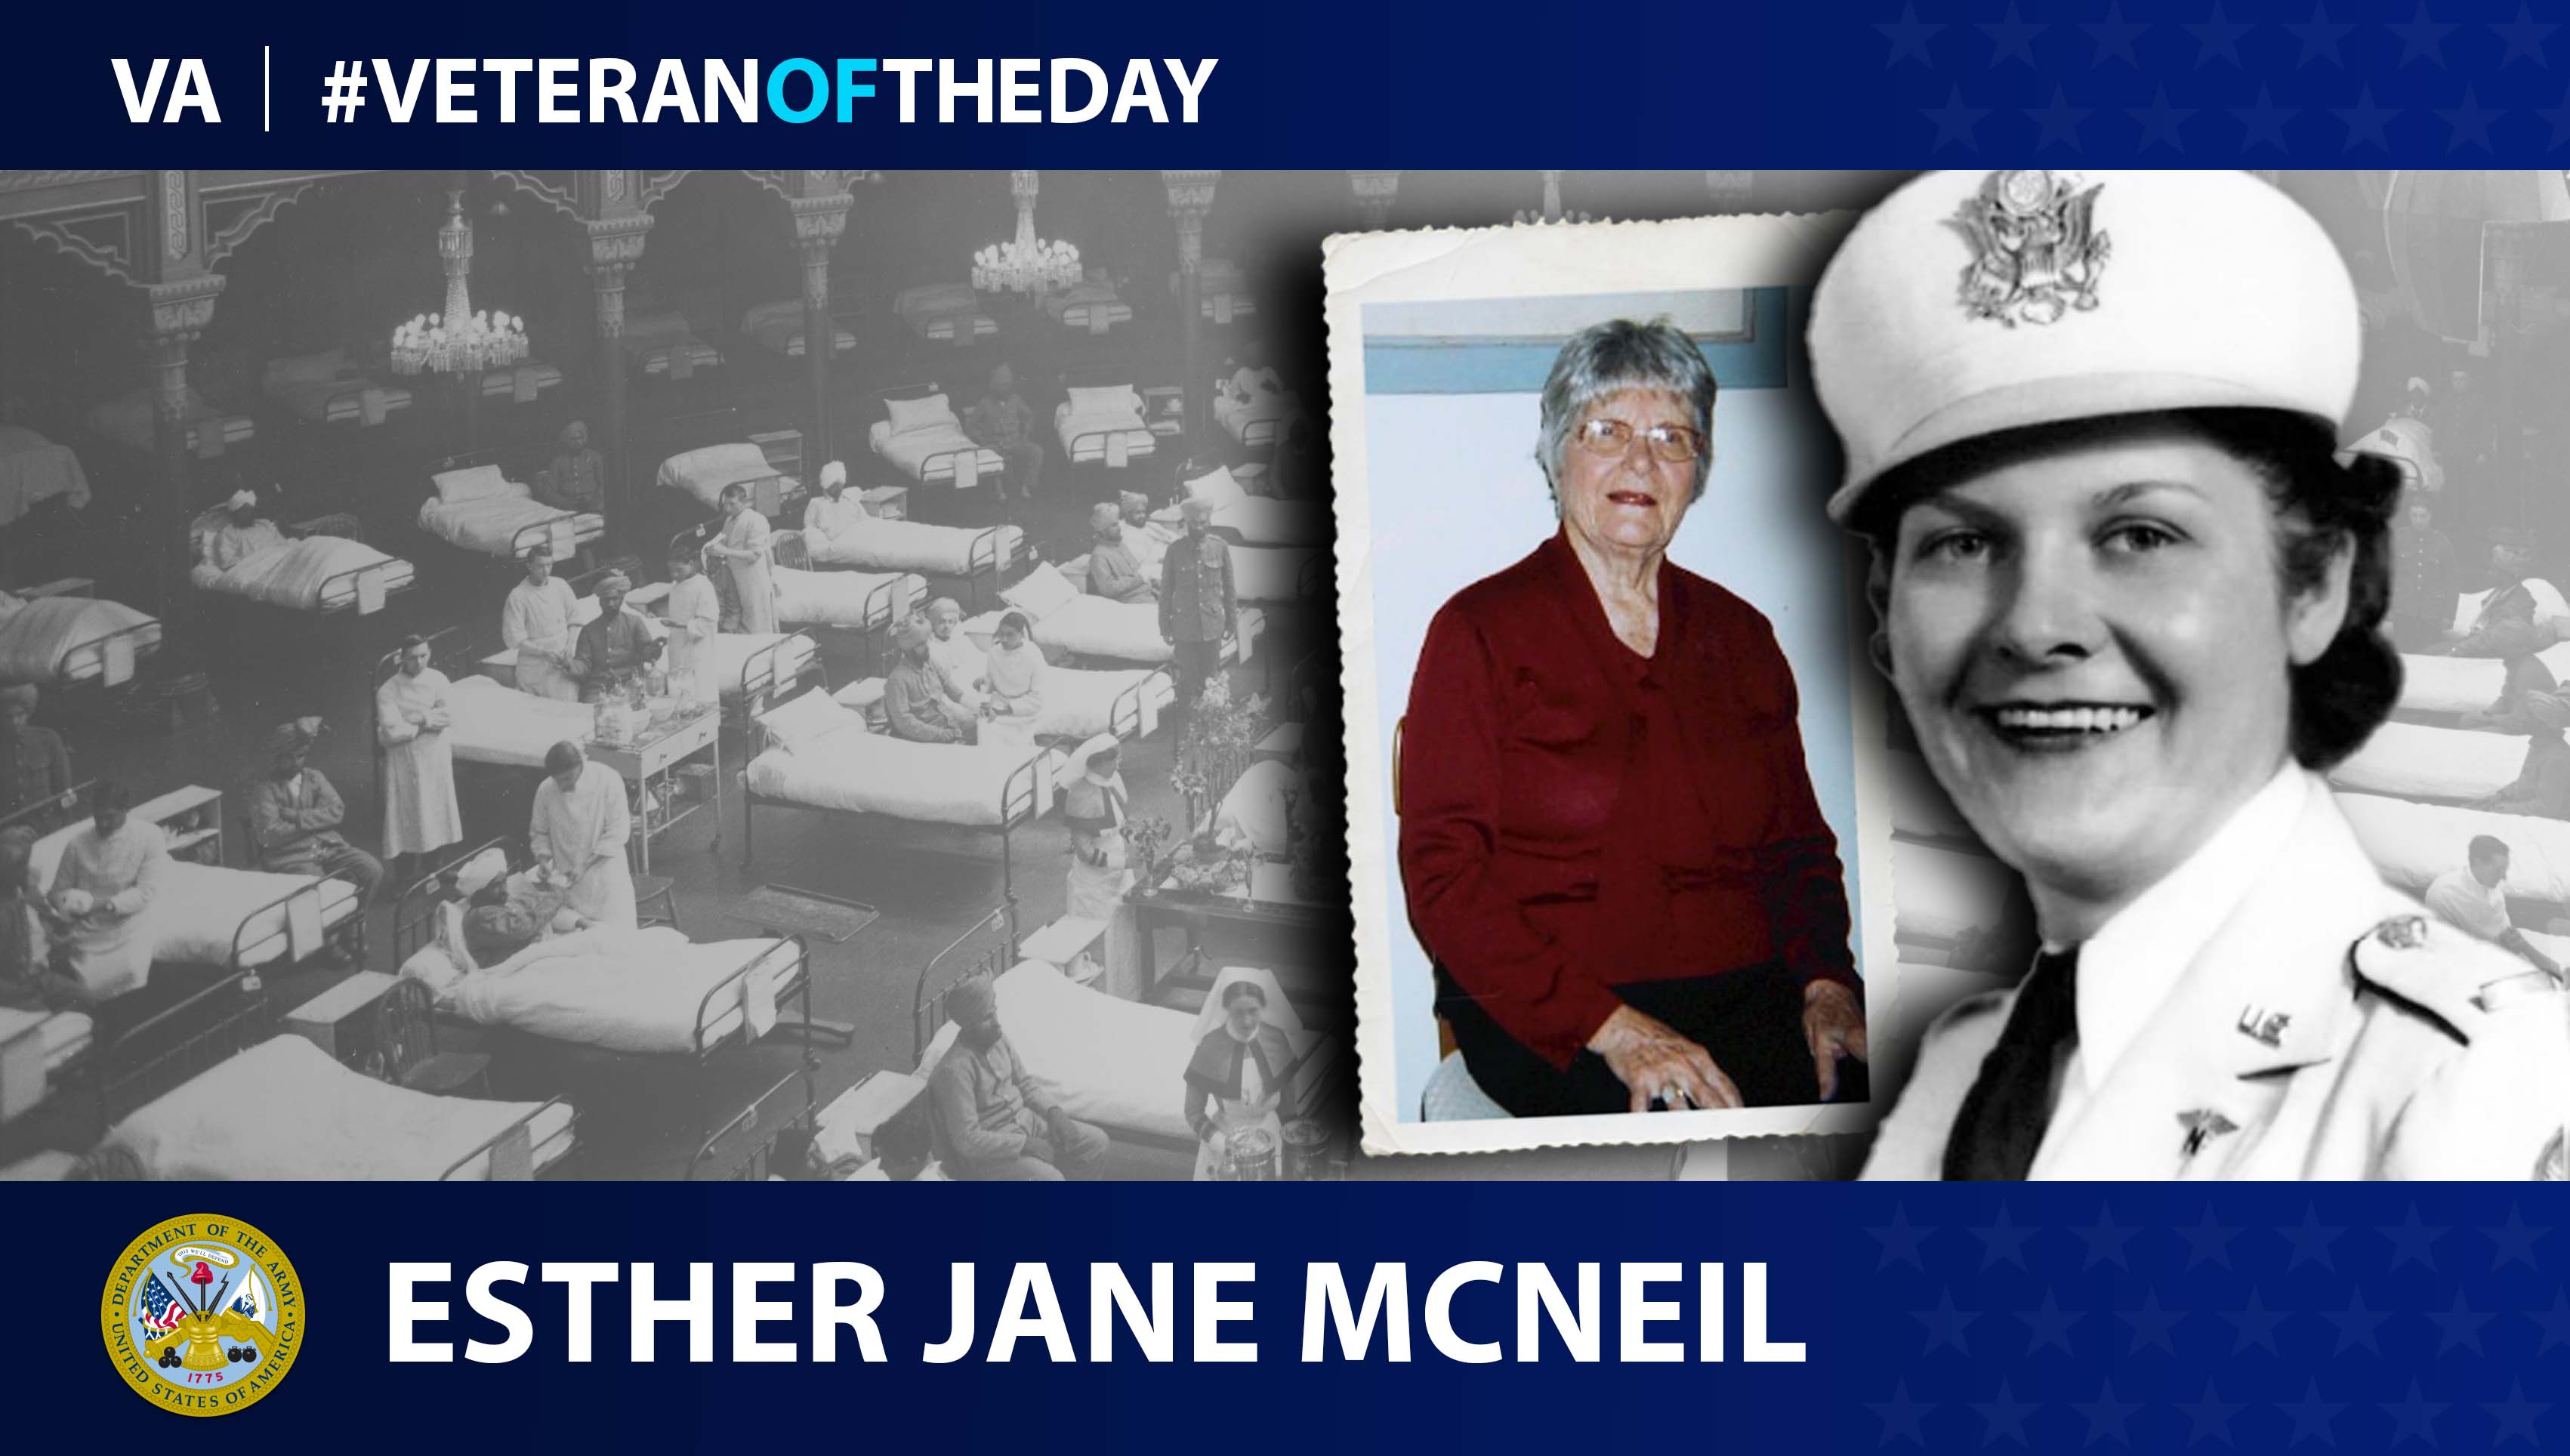 Veteran of the Day...Esther Jane McNeil